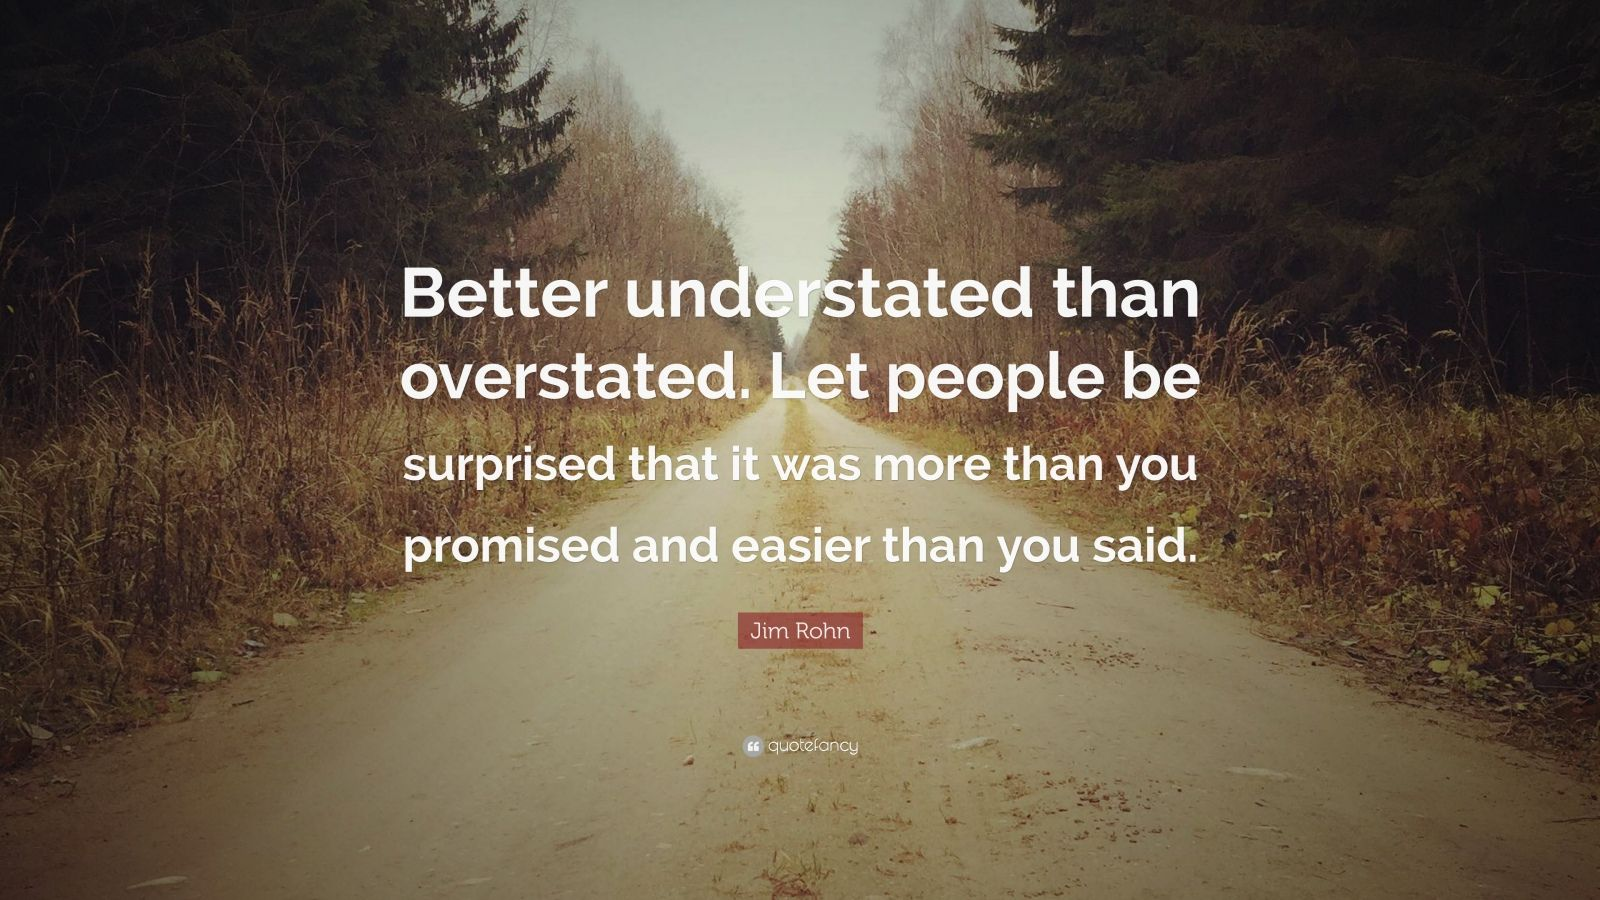 """Jim Rohn Quote: """"Better understated than overstated. Let people be surprised that it was more than you promised and easier than you said."""""""